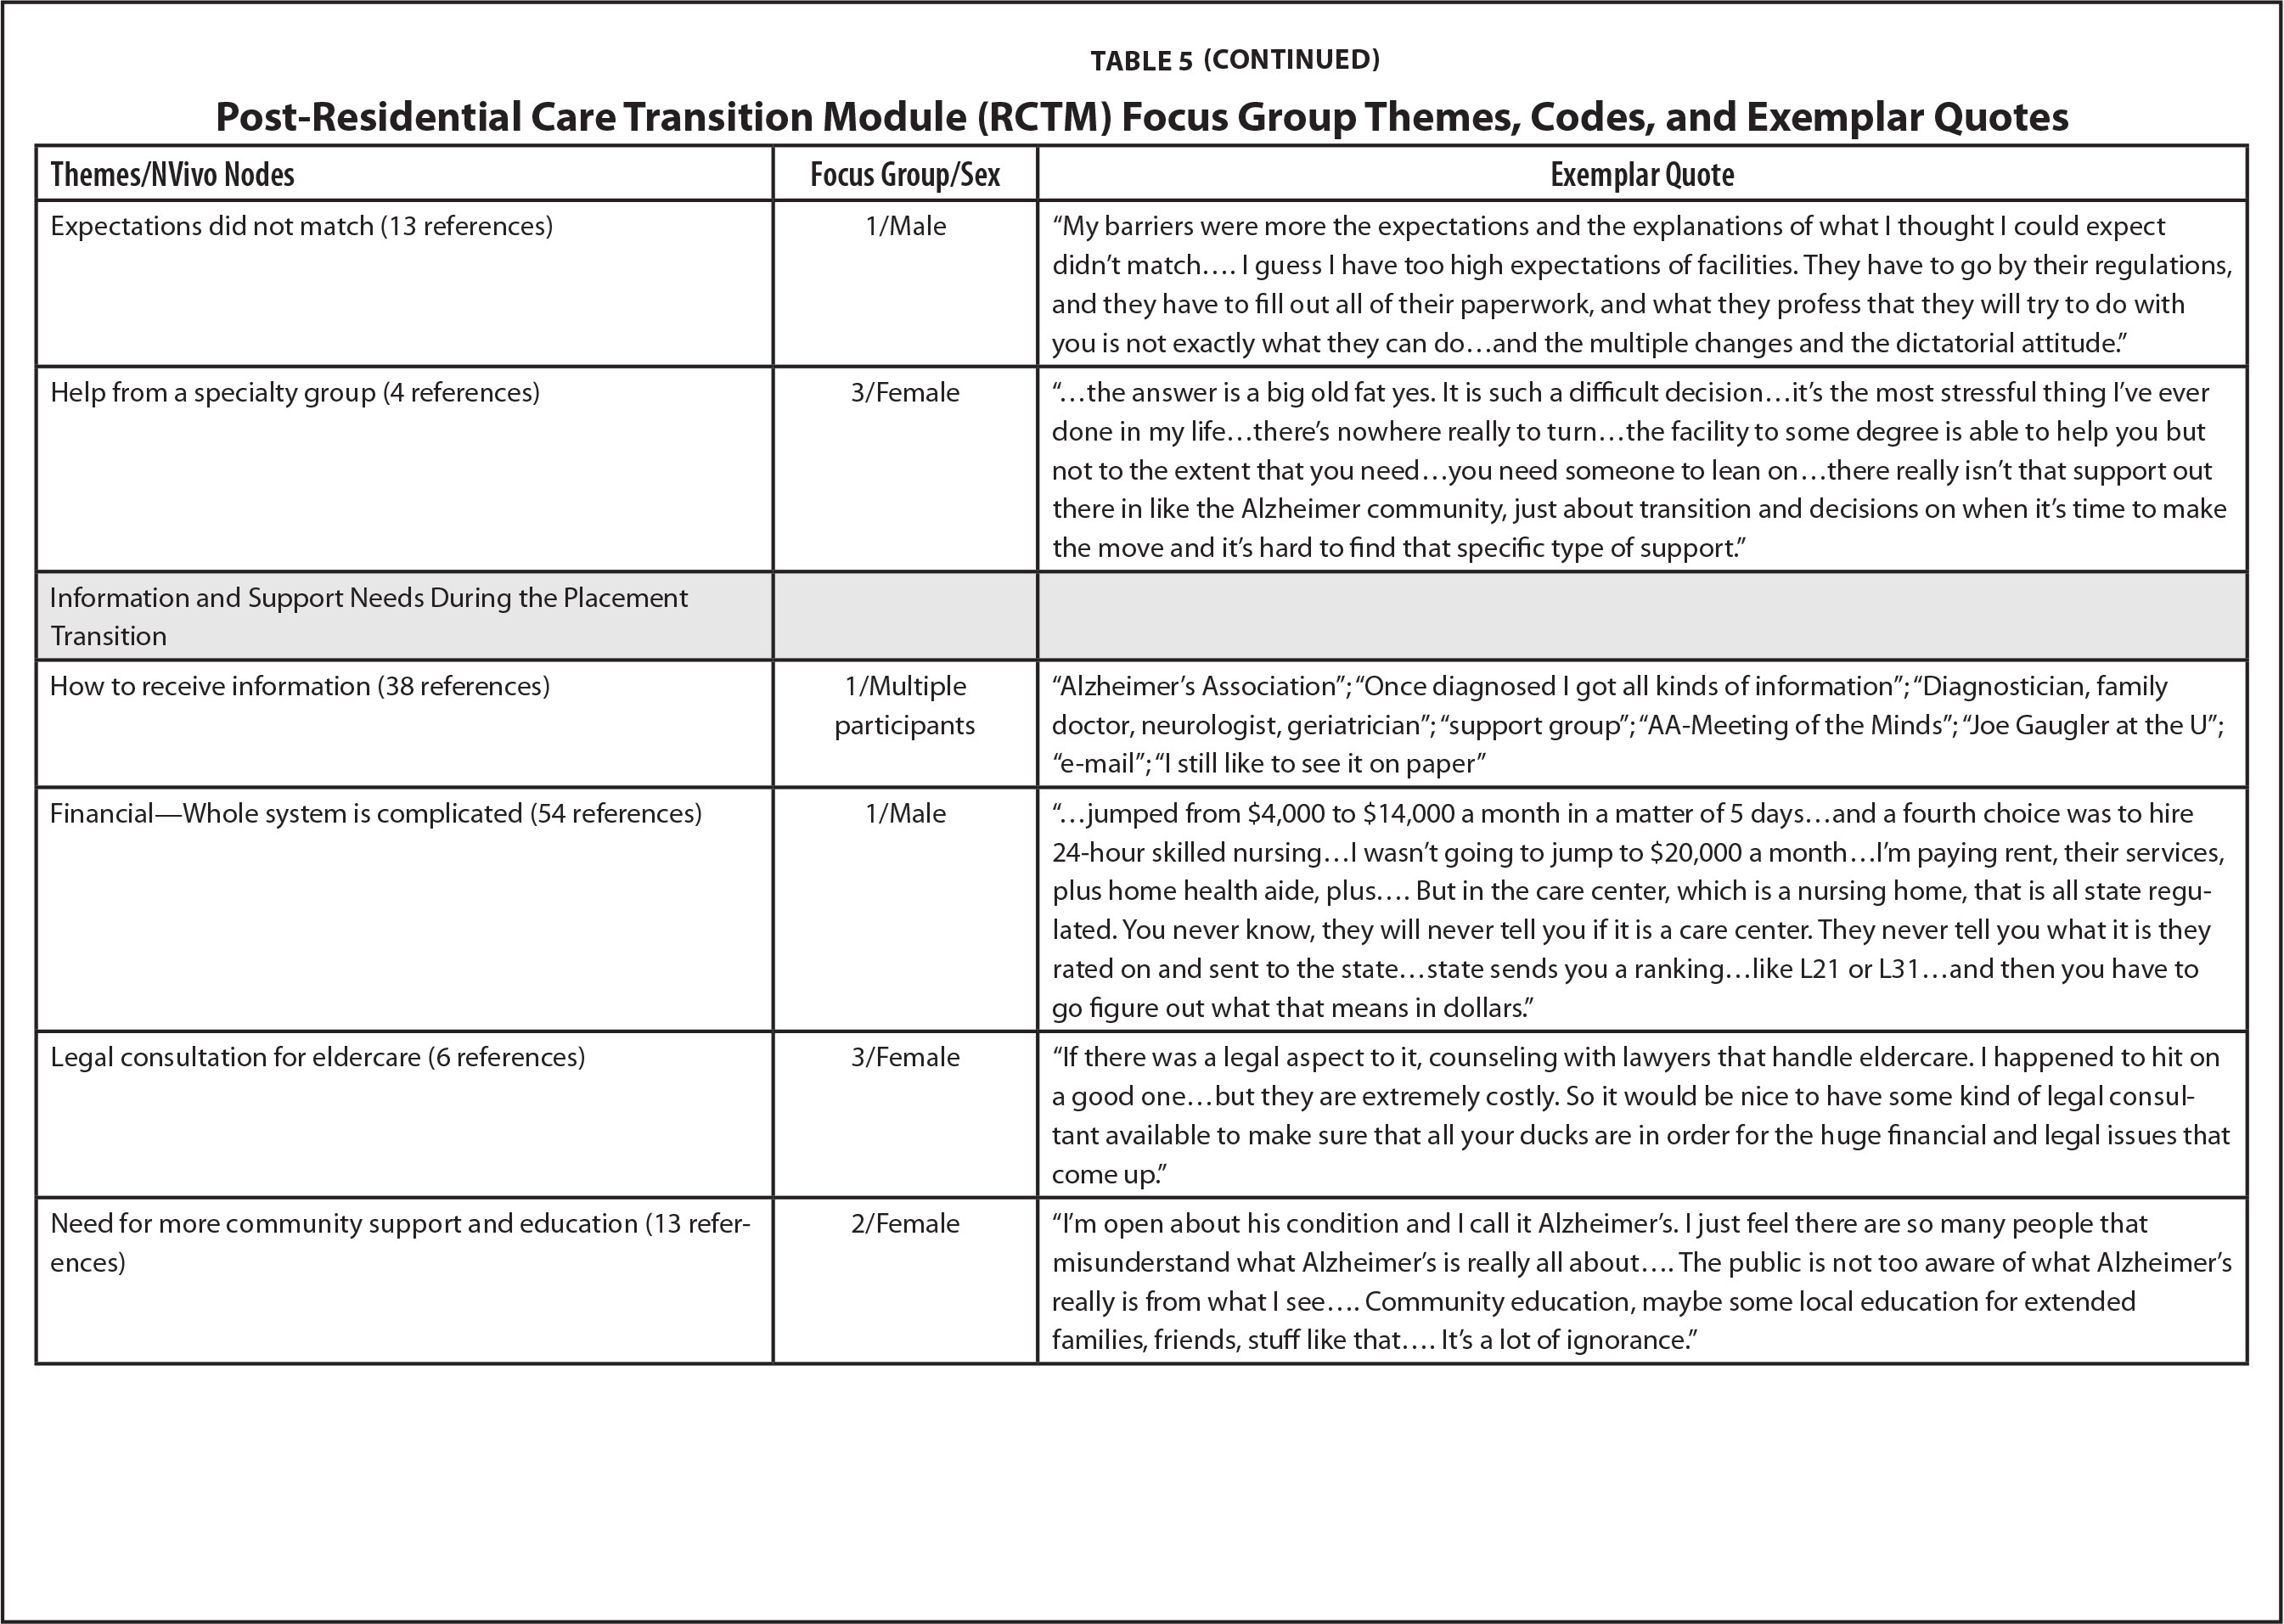 Post-Residential Care Transition Module (RCTM) Focus Group Themes, Codes, and Exemplar Quotes